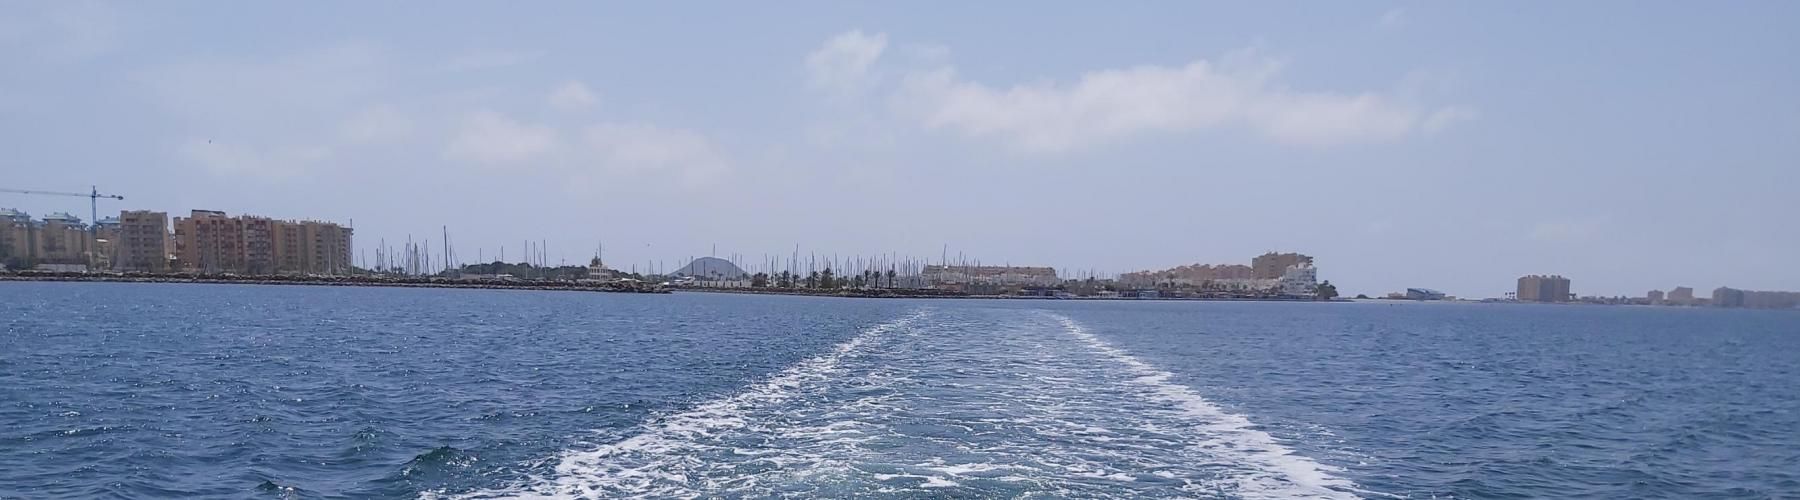 EuroTourGuide Coach Tour Thursday 2nd September Mar Menor and Boat Trip